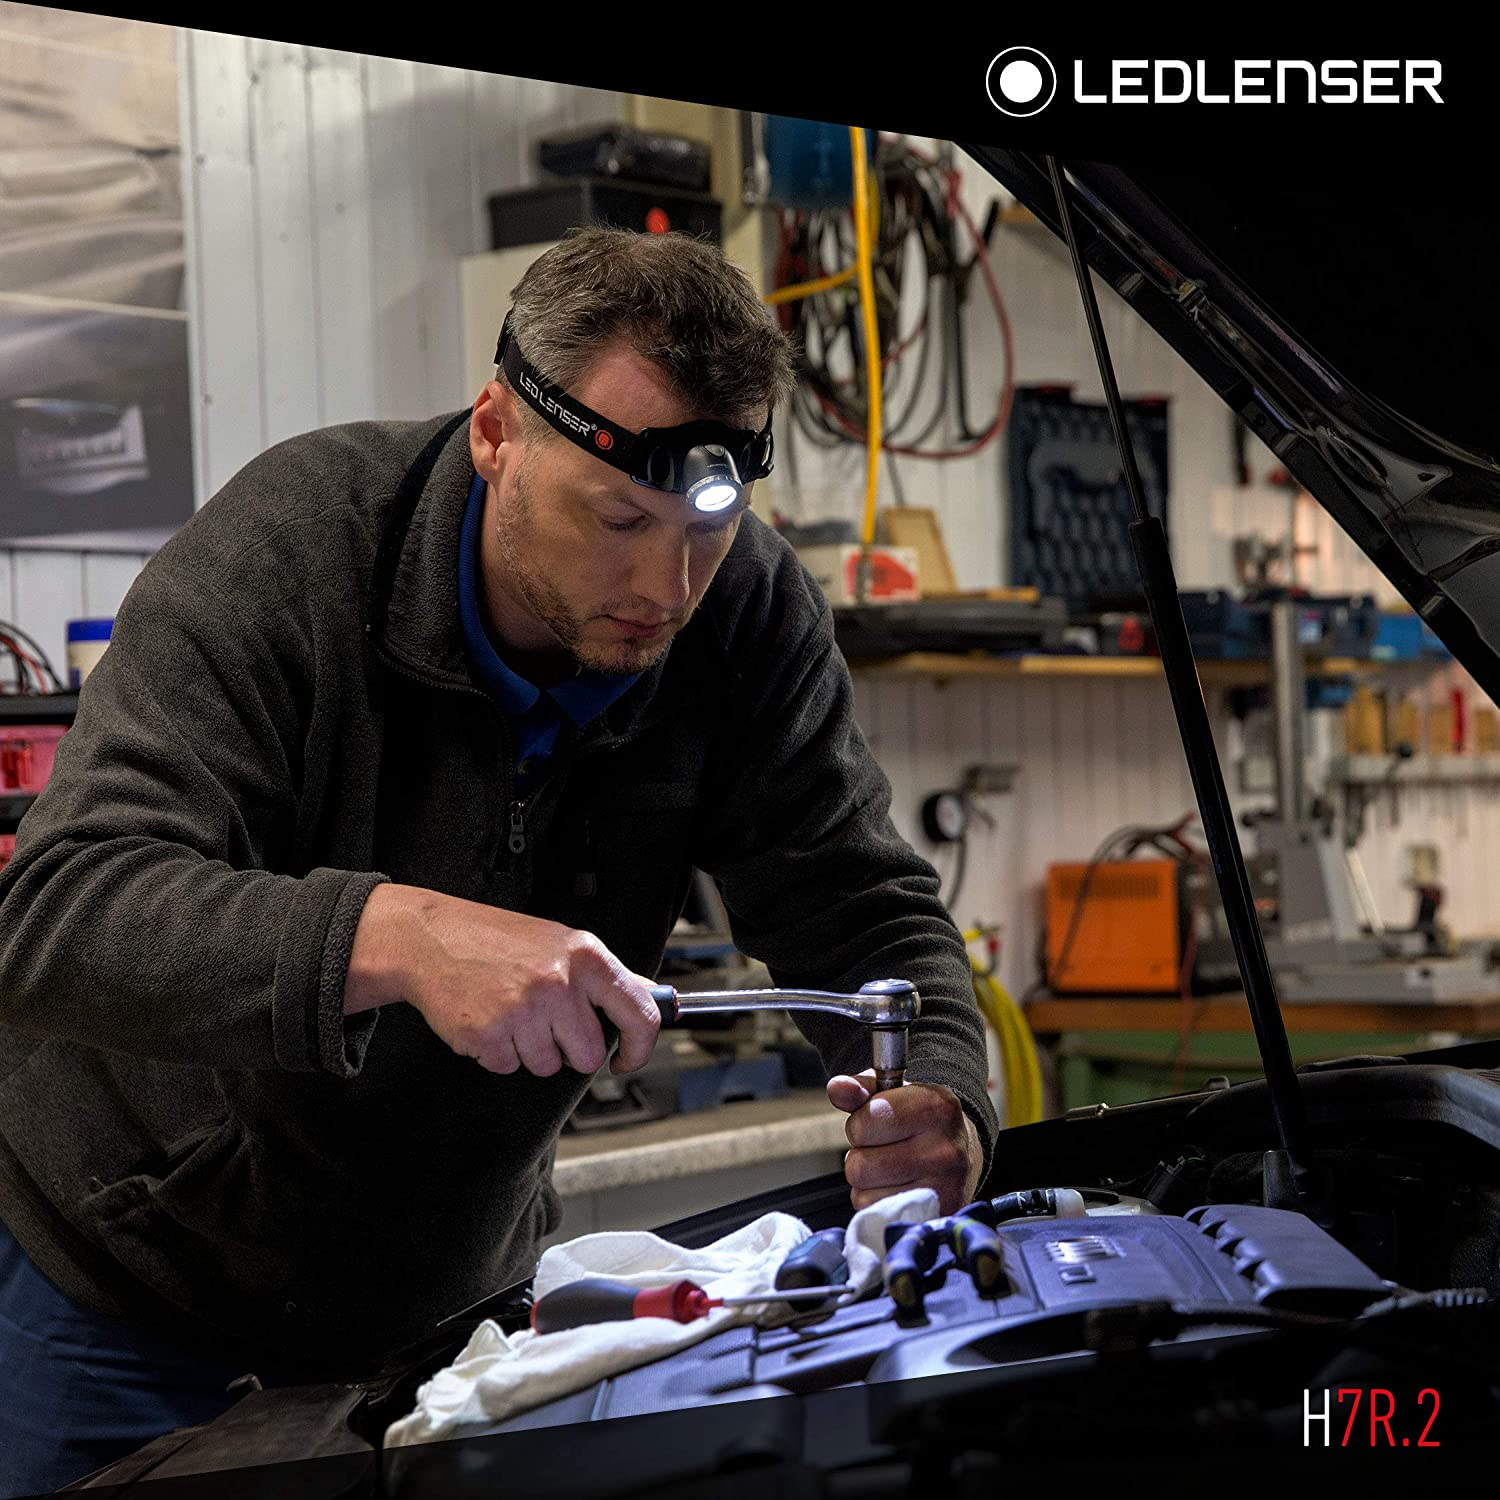 powerful 300 lumens and 160m beam range using advanced spot to flood optic gives long range beam and wide spread illumination LED Lenser LED7298 H7R.2 Rechargeable Head Lamp